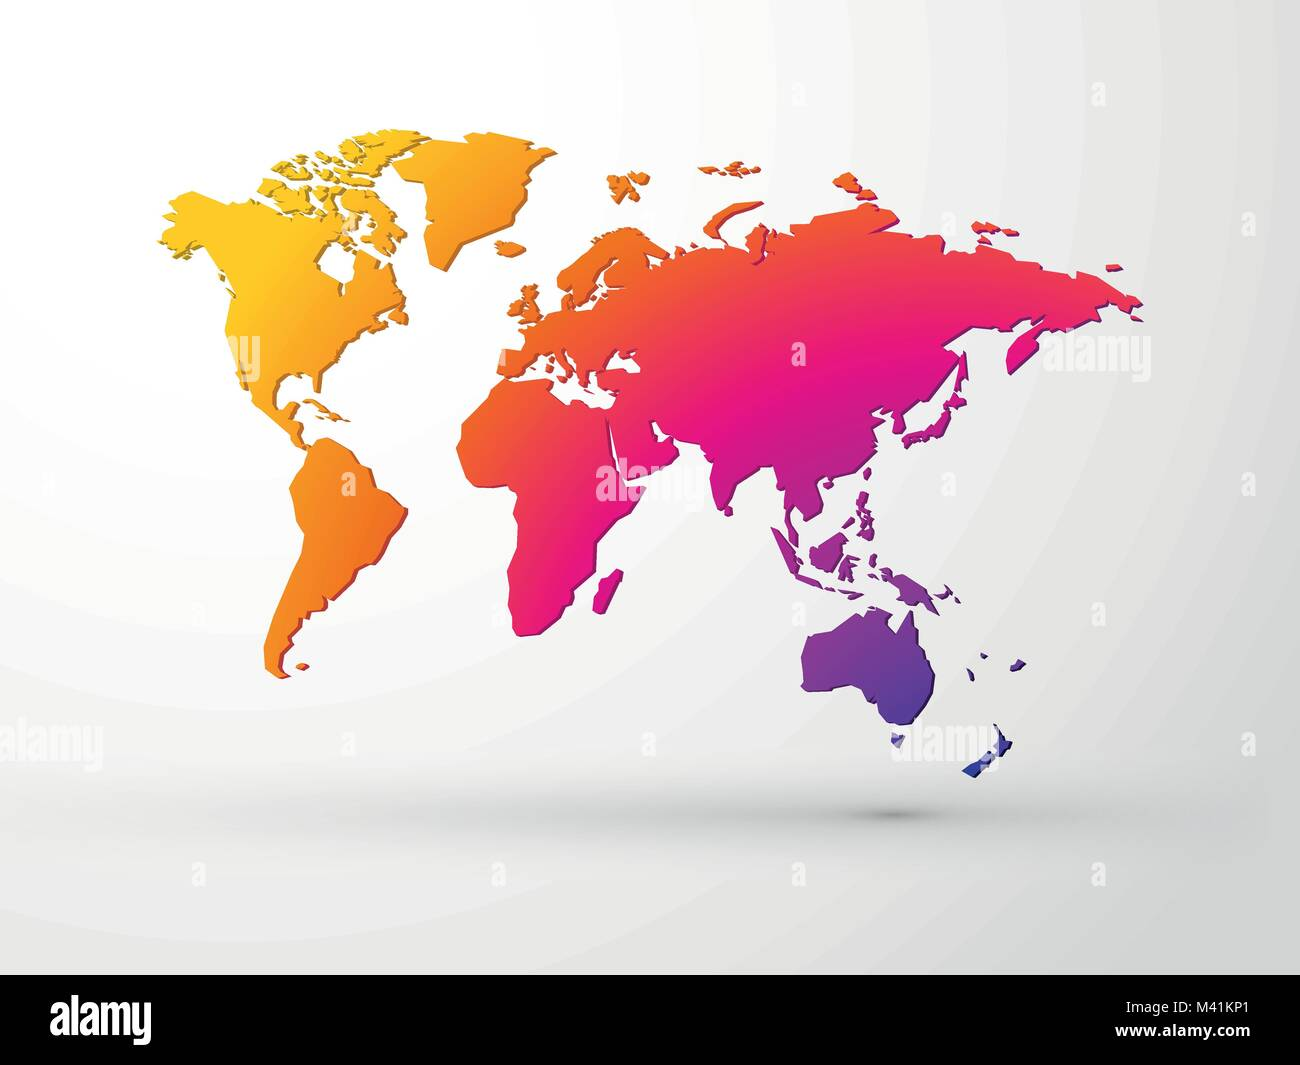 World map 3d color vector stock vector art illustration vector world map 3d color vector gumiabroncs Image collections